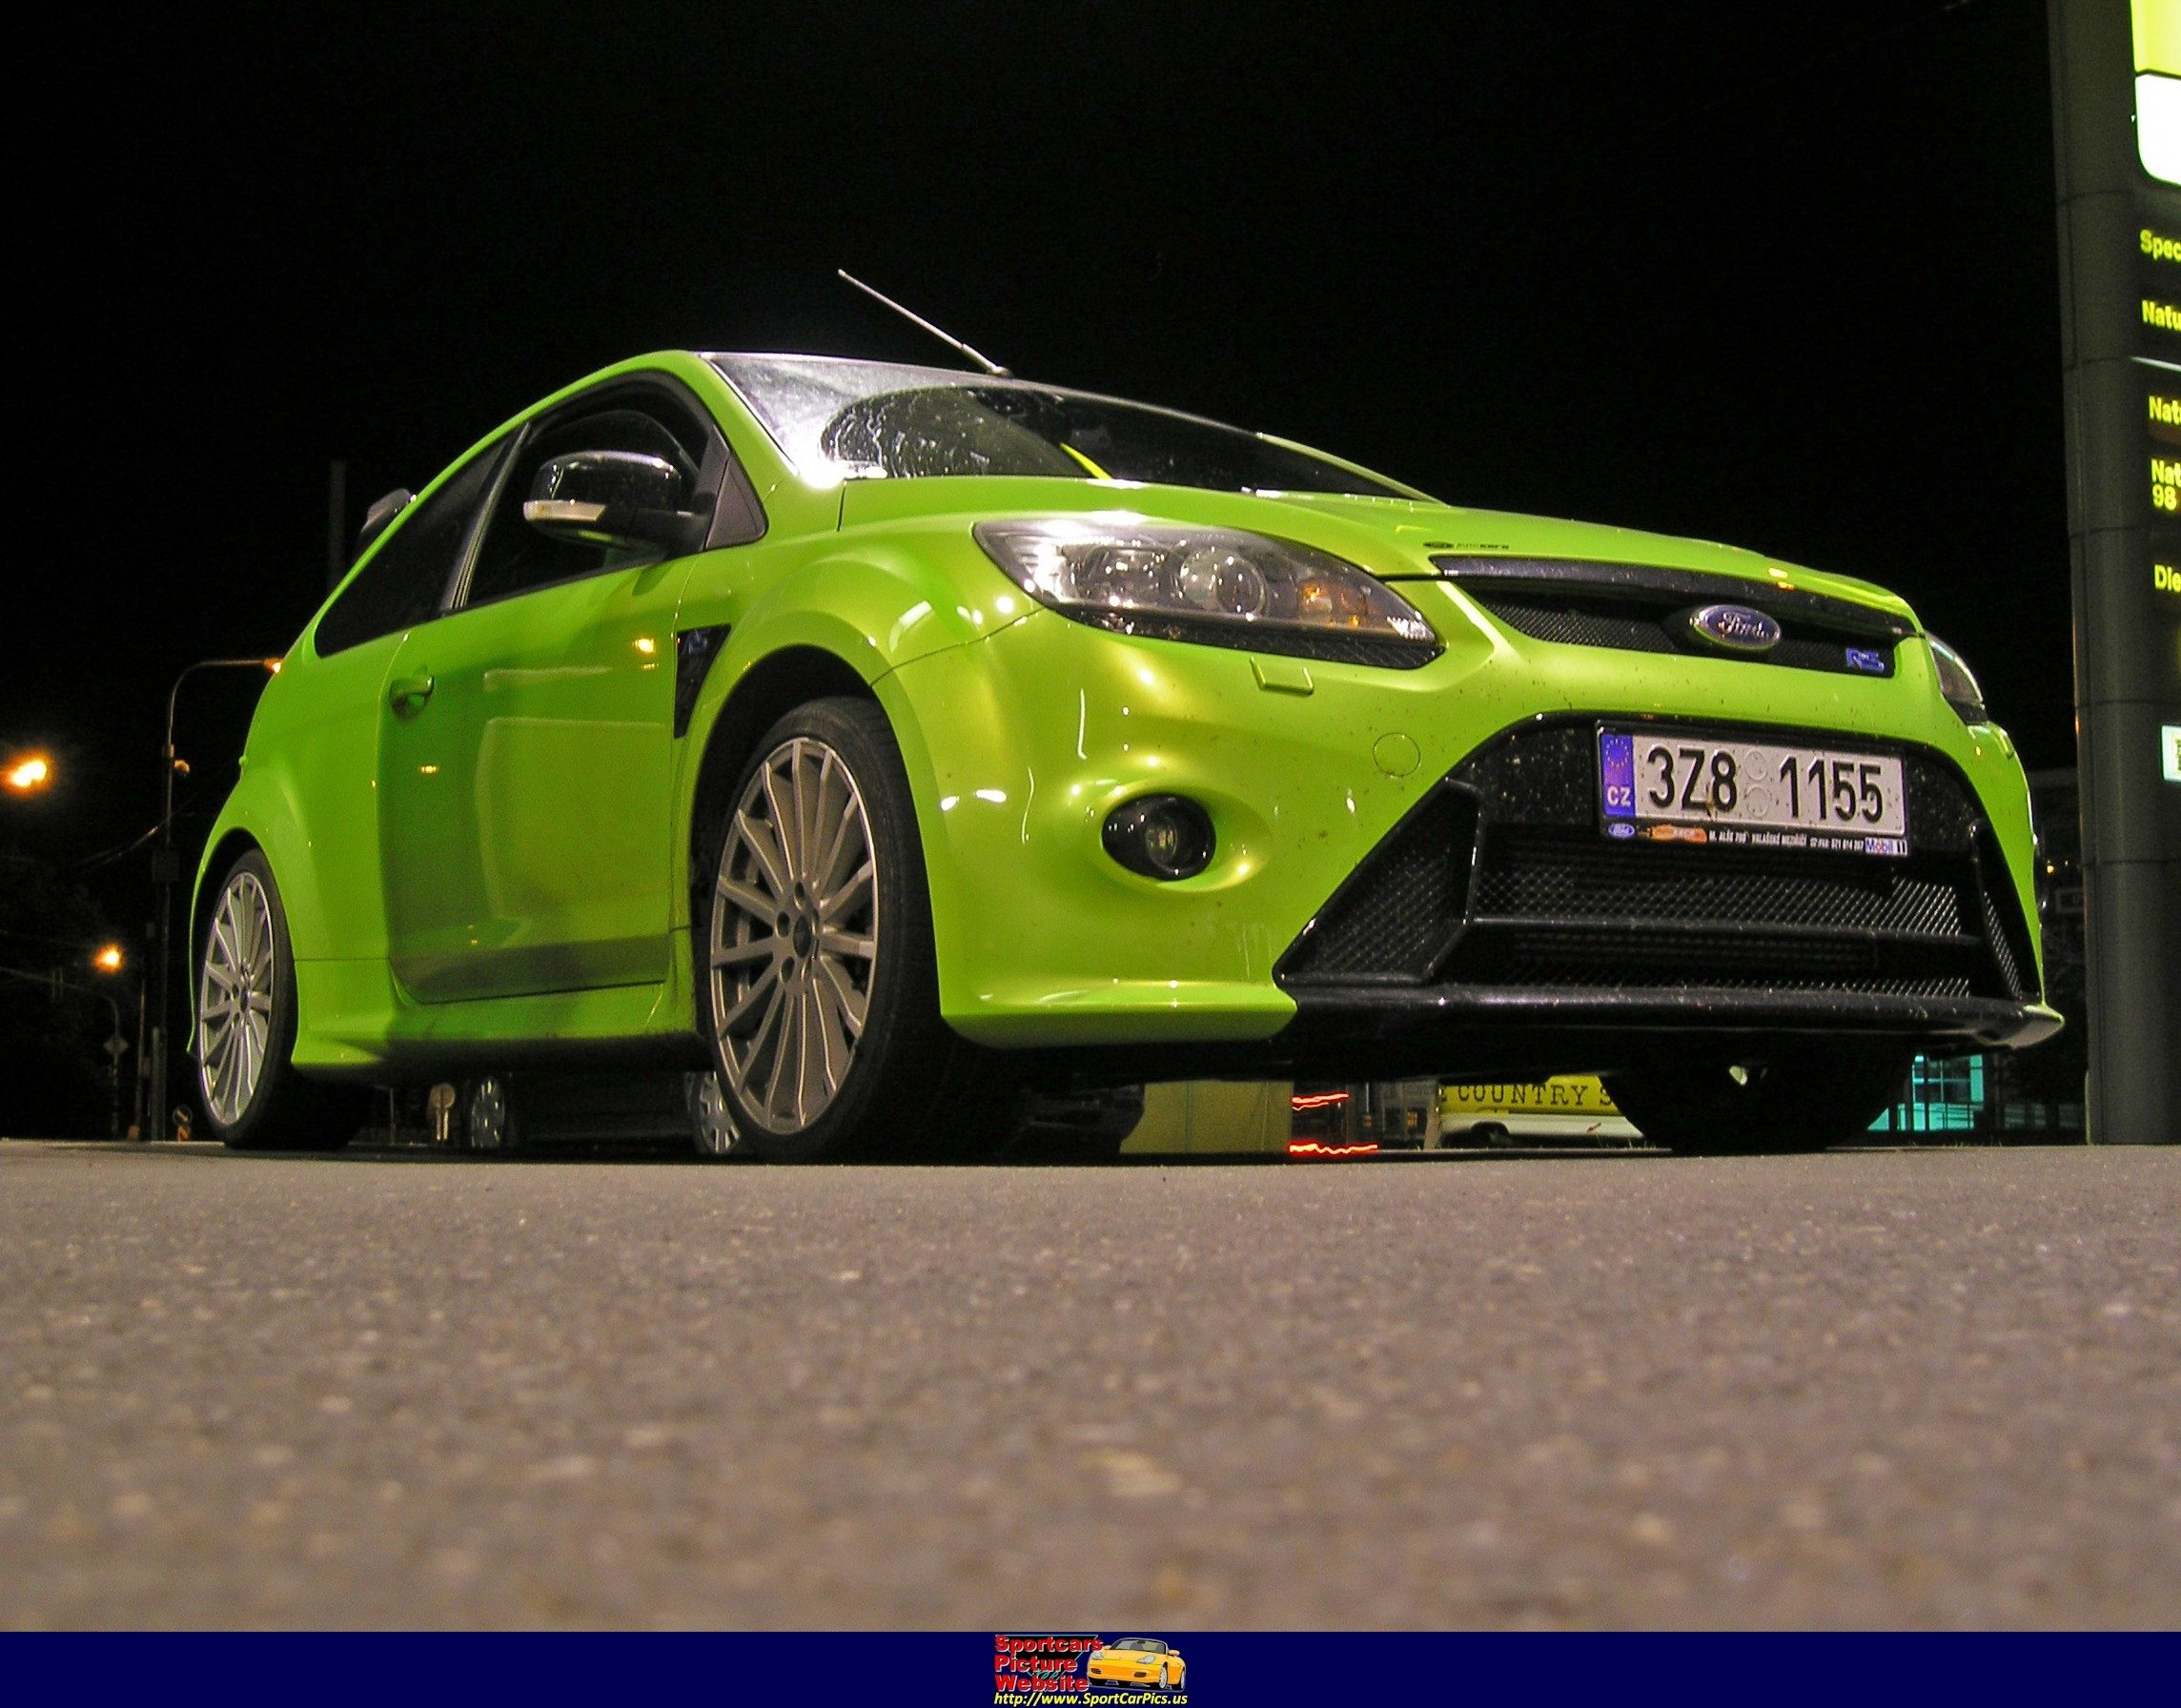 Ford Focus RS - ID: 72159